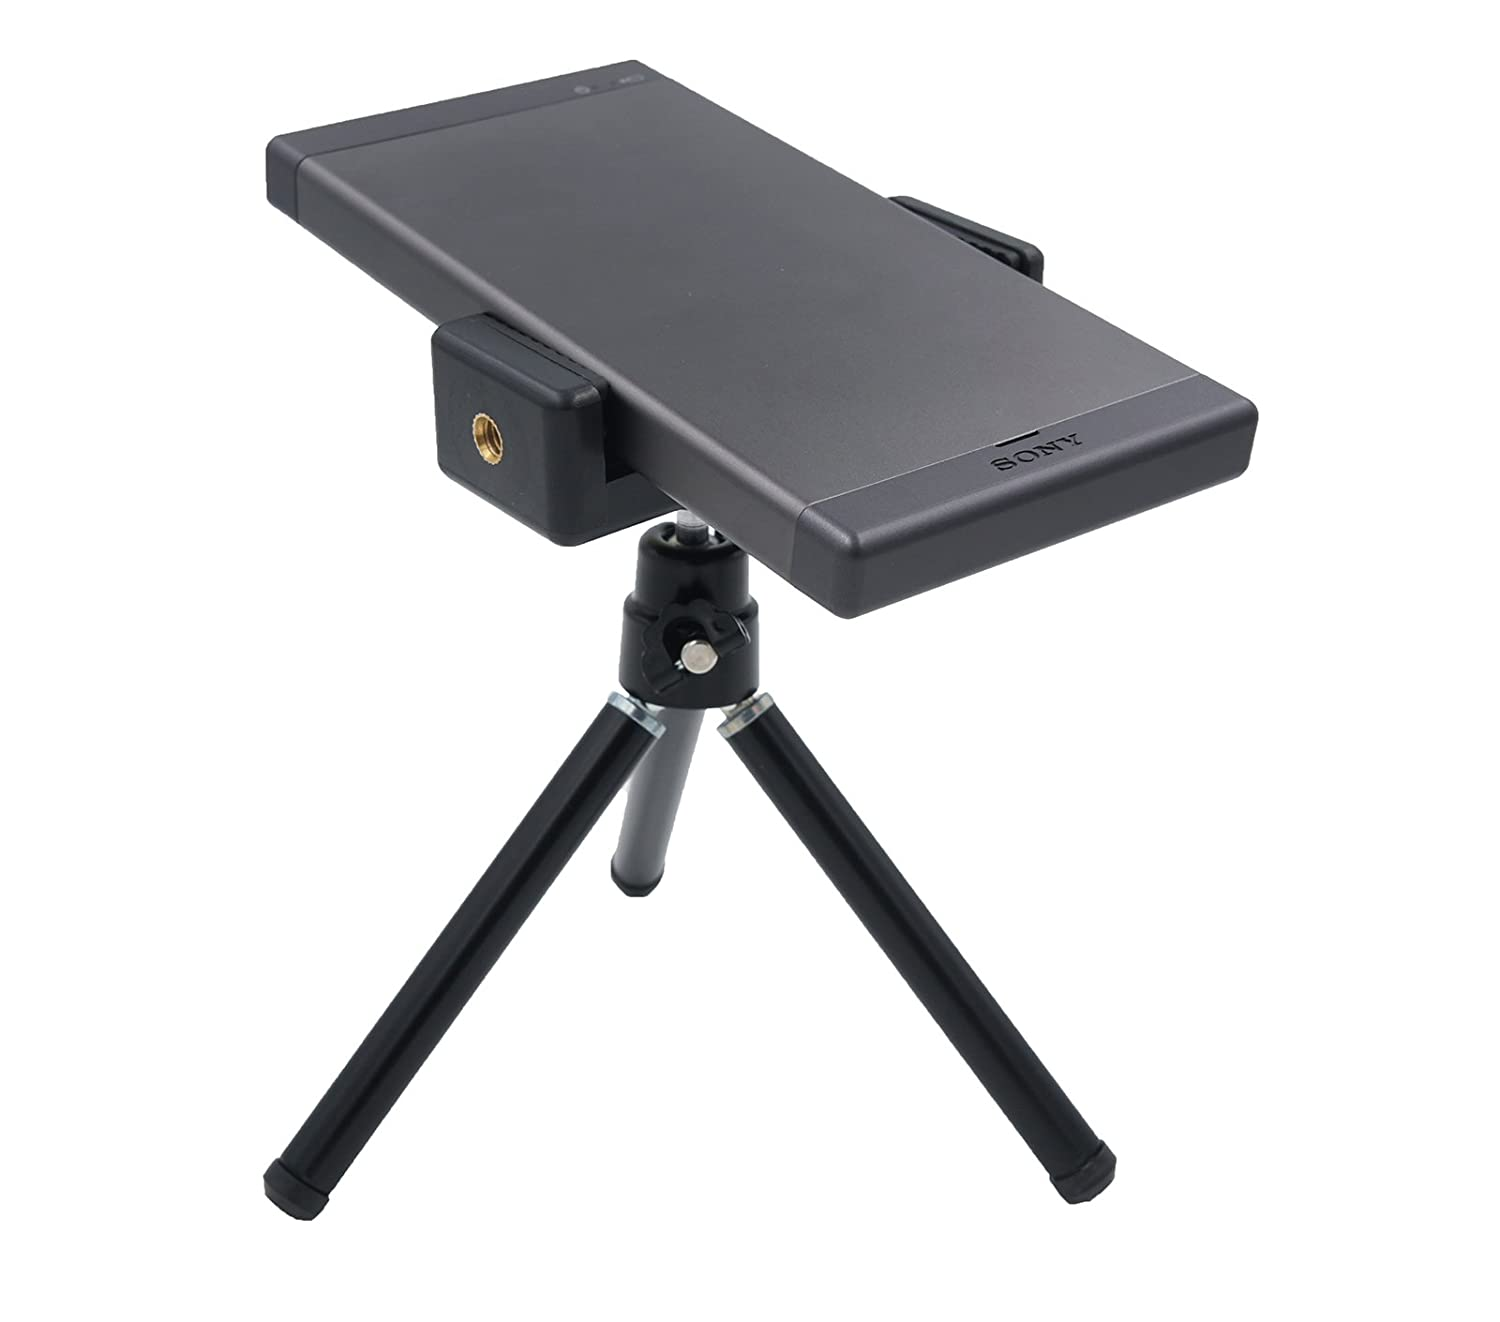 Mini 360 Rotatable Stand Adjustable Mini Tripod Mount For Sony Portable HD Mobile Projector MP-CL1 / MP-CL1A @ccessory